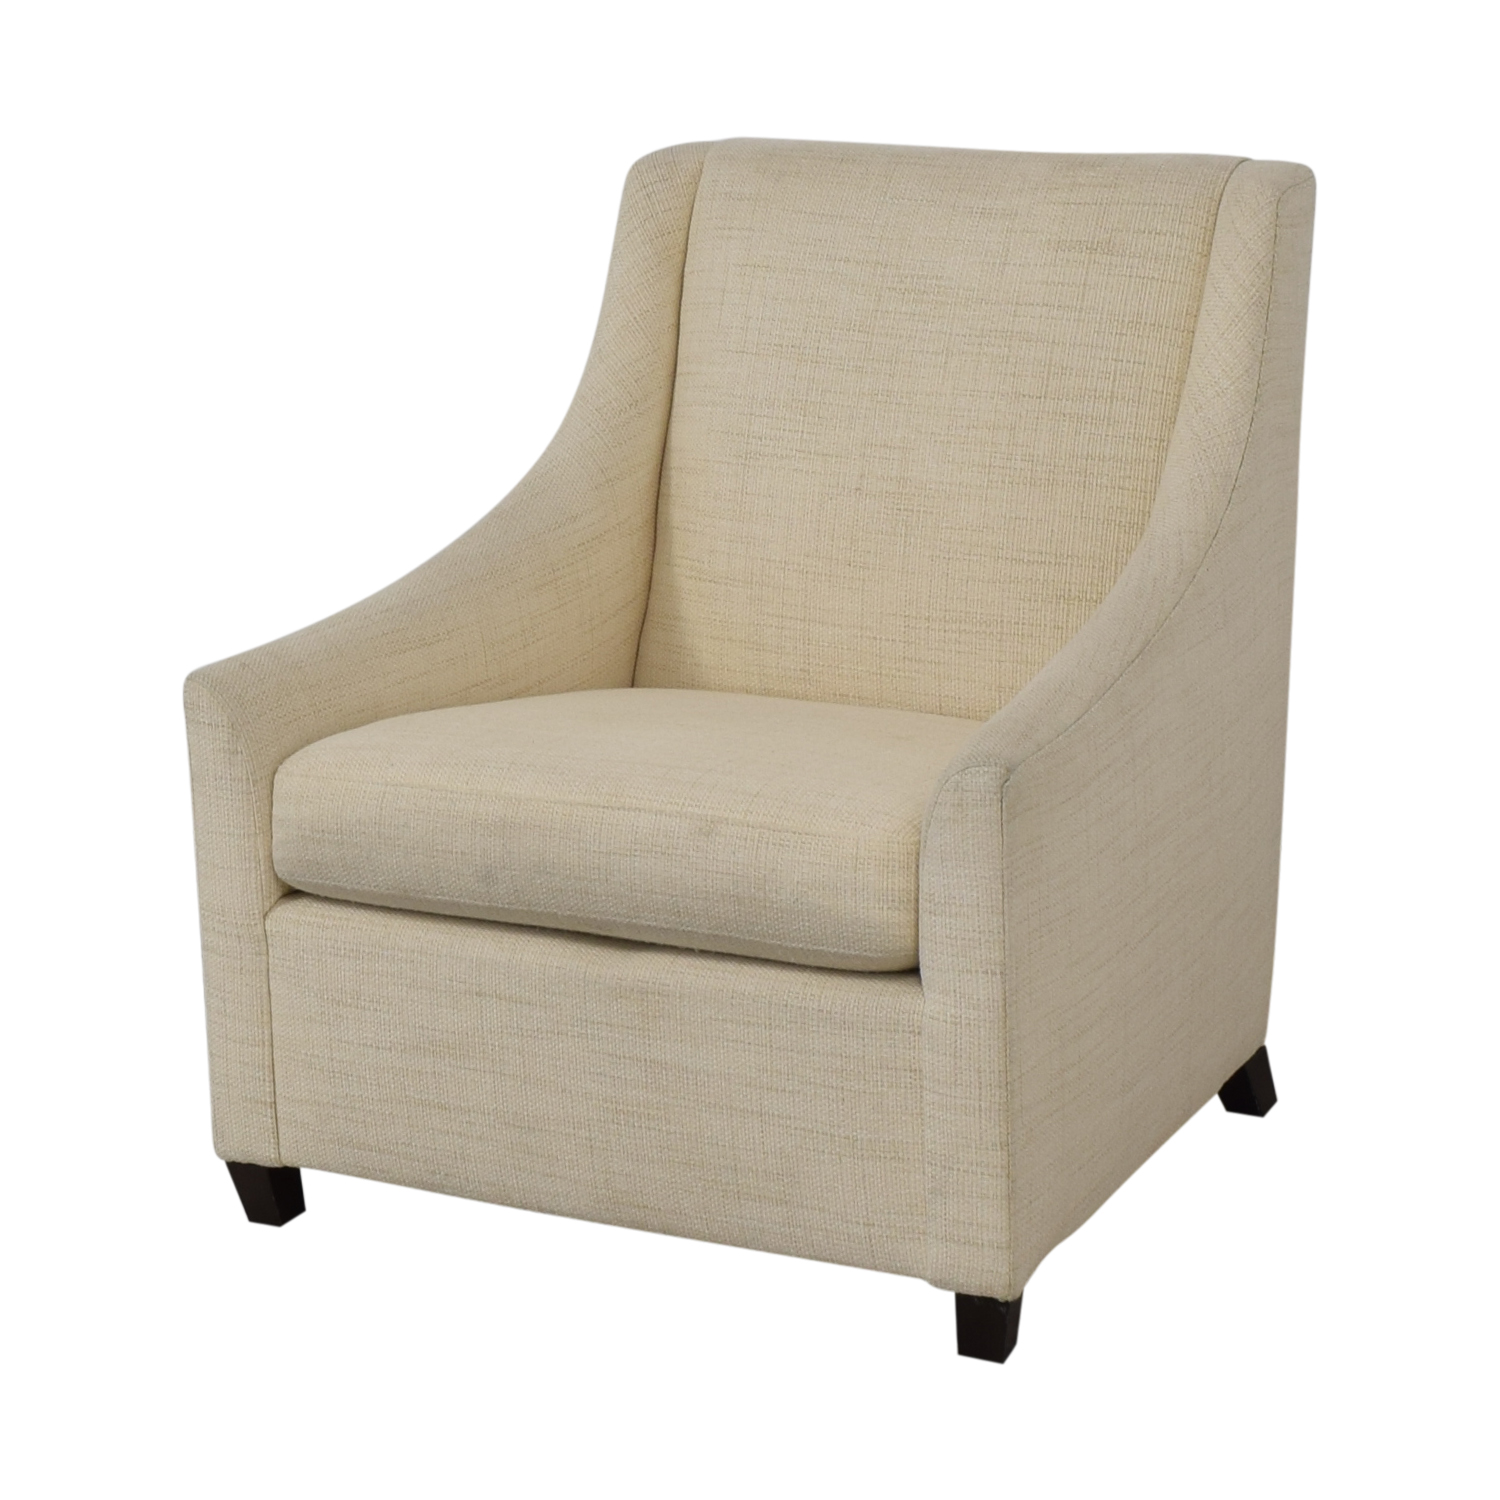 West Elm West Elm Sweep Accent Chair nyc